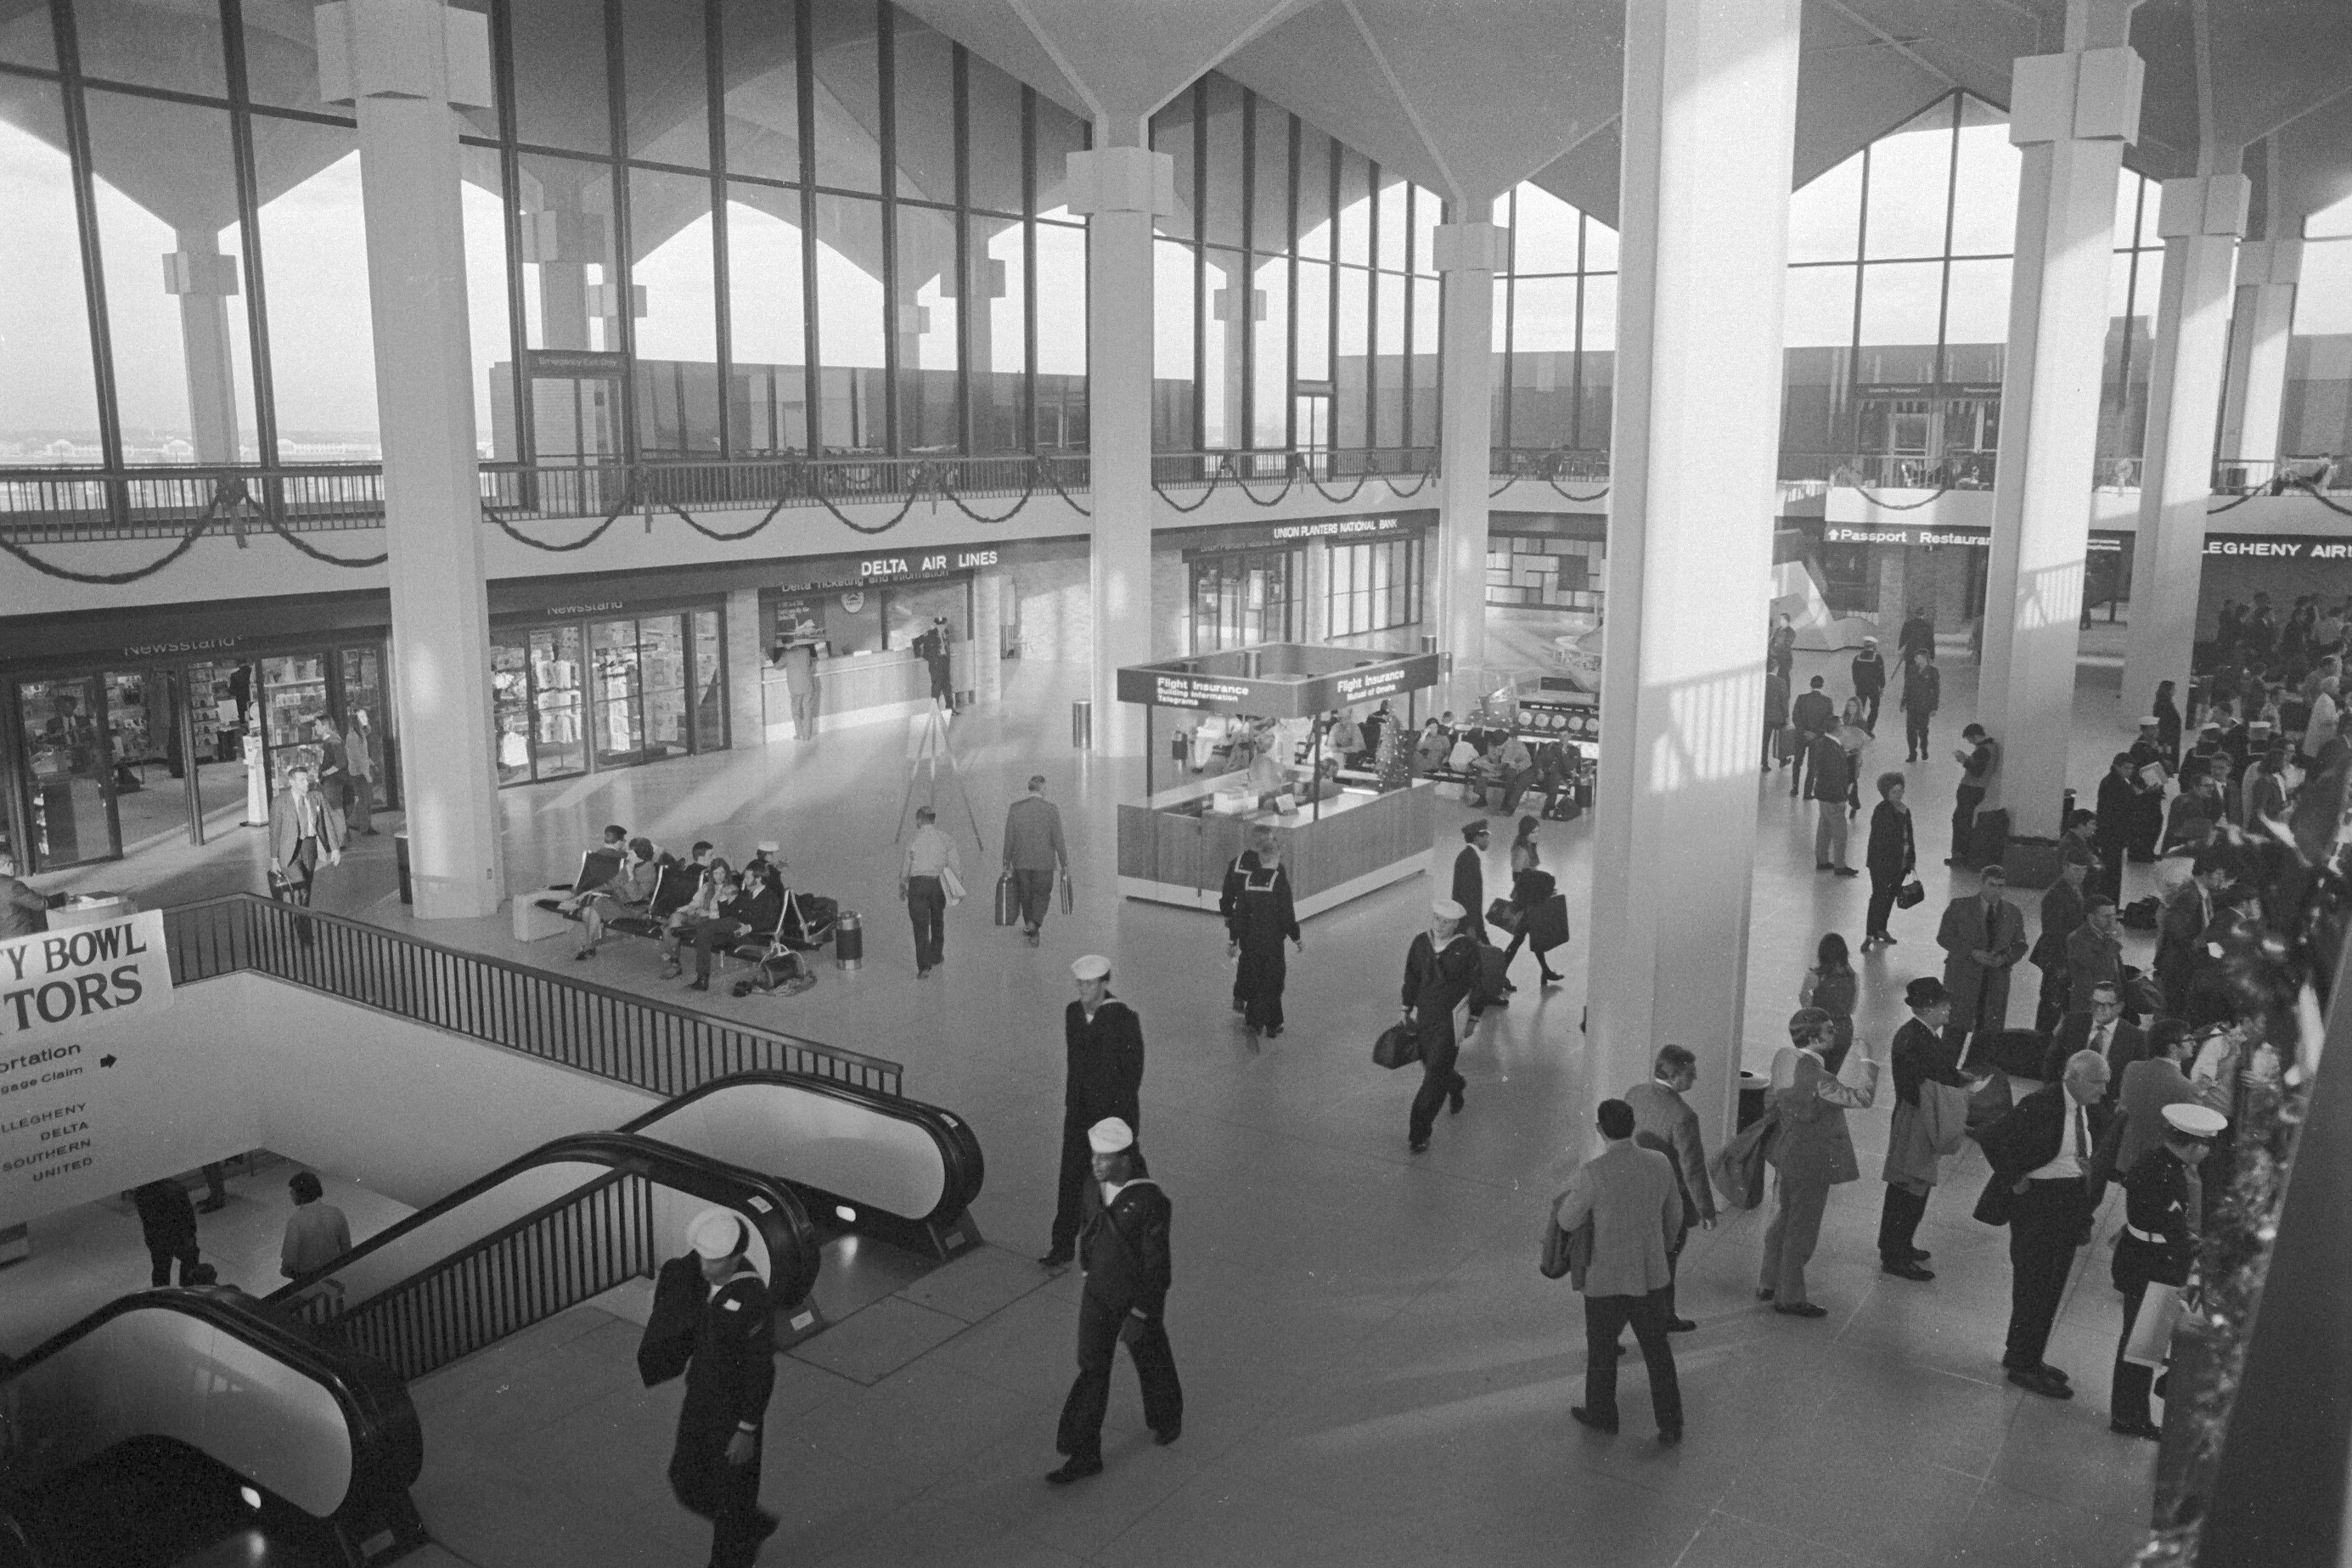 http://upload.wikimedia.org/wikipedia/commons/8/8a/Memphis-international-airport-1970s.jpg